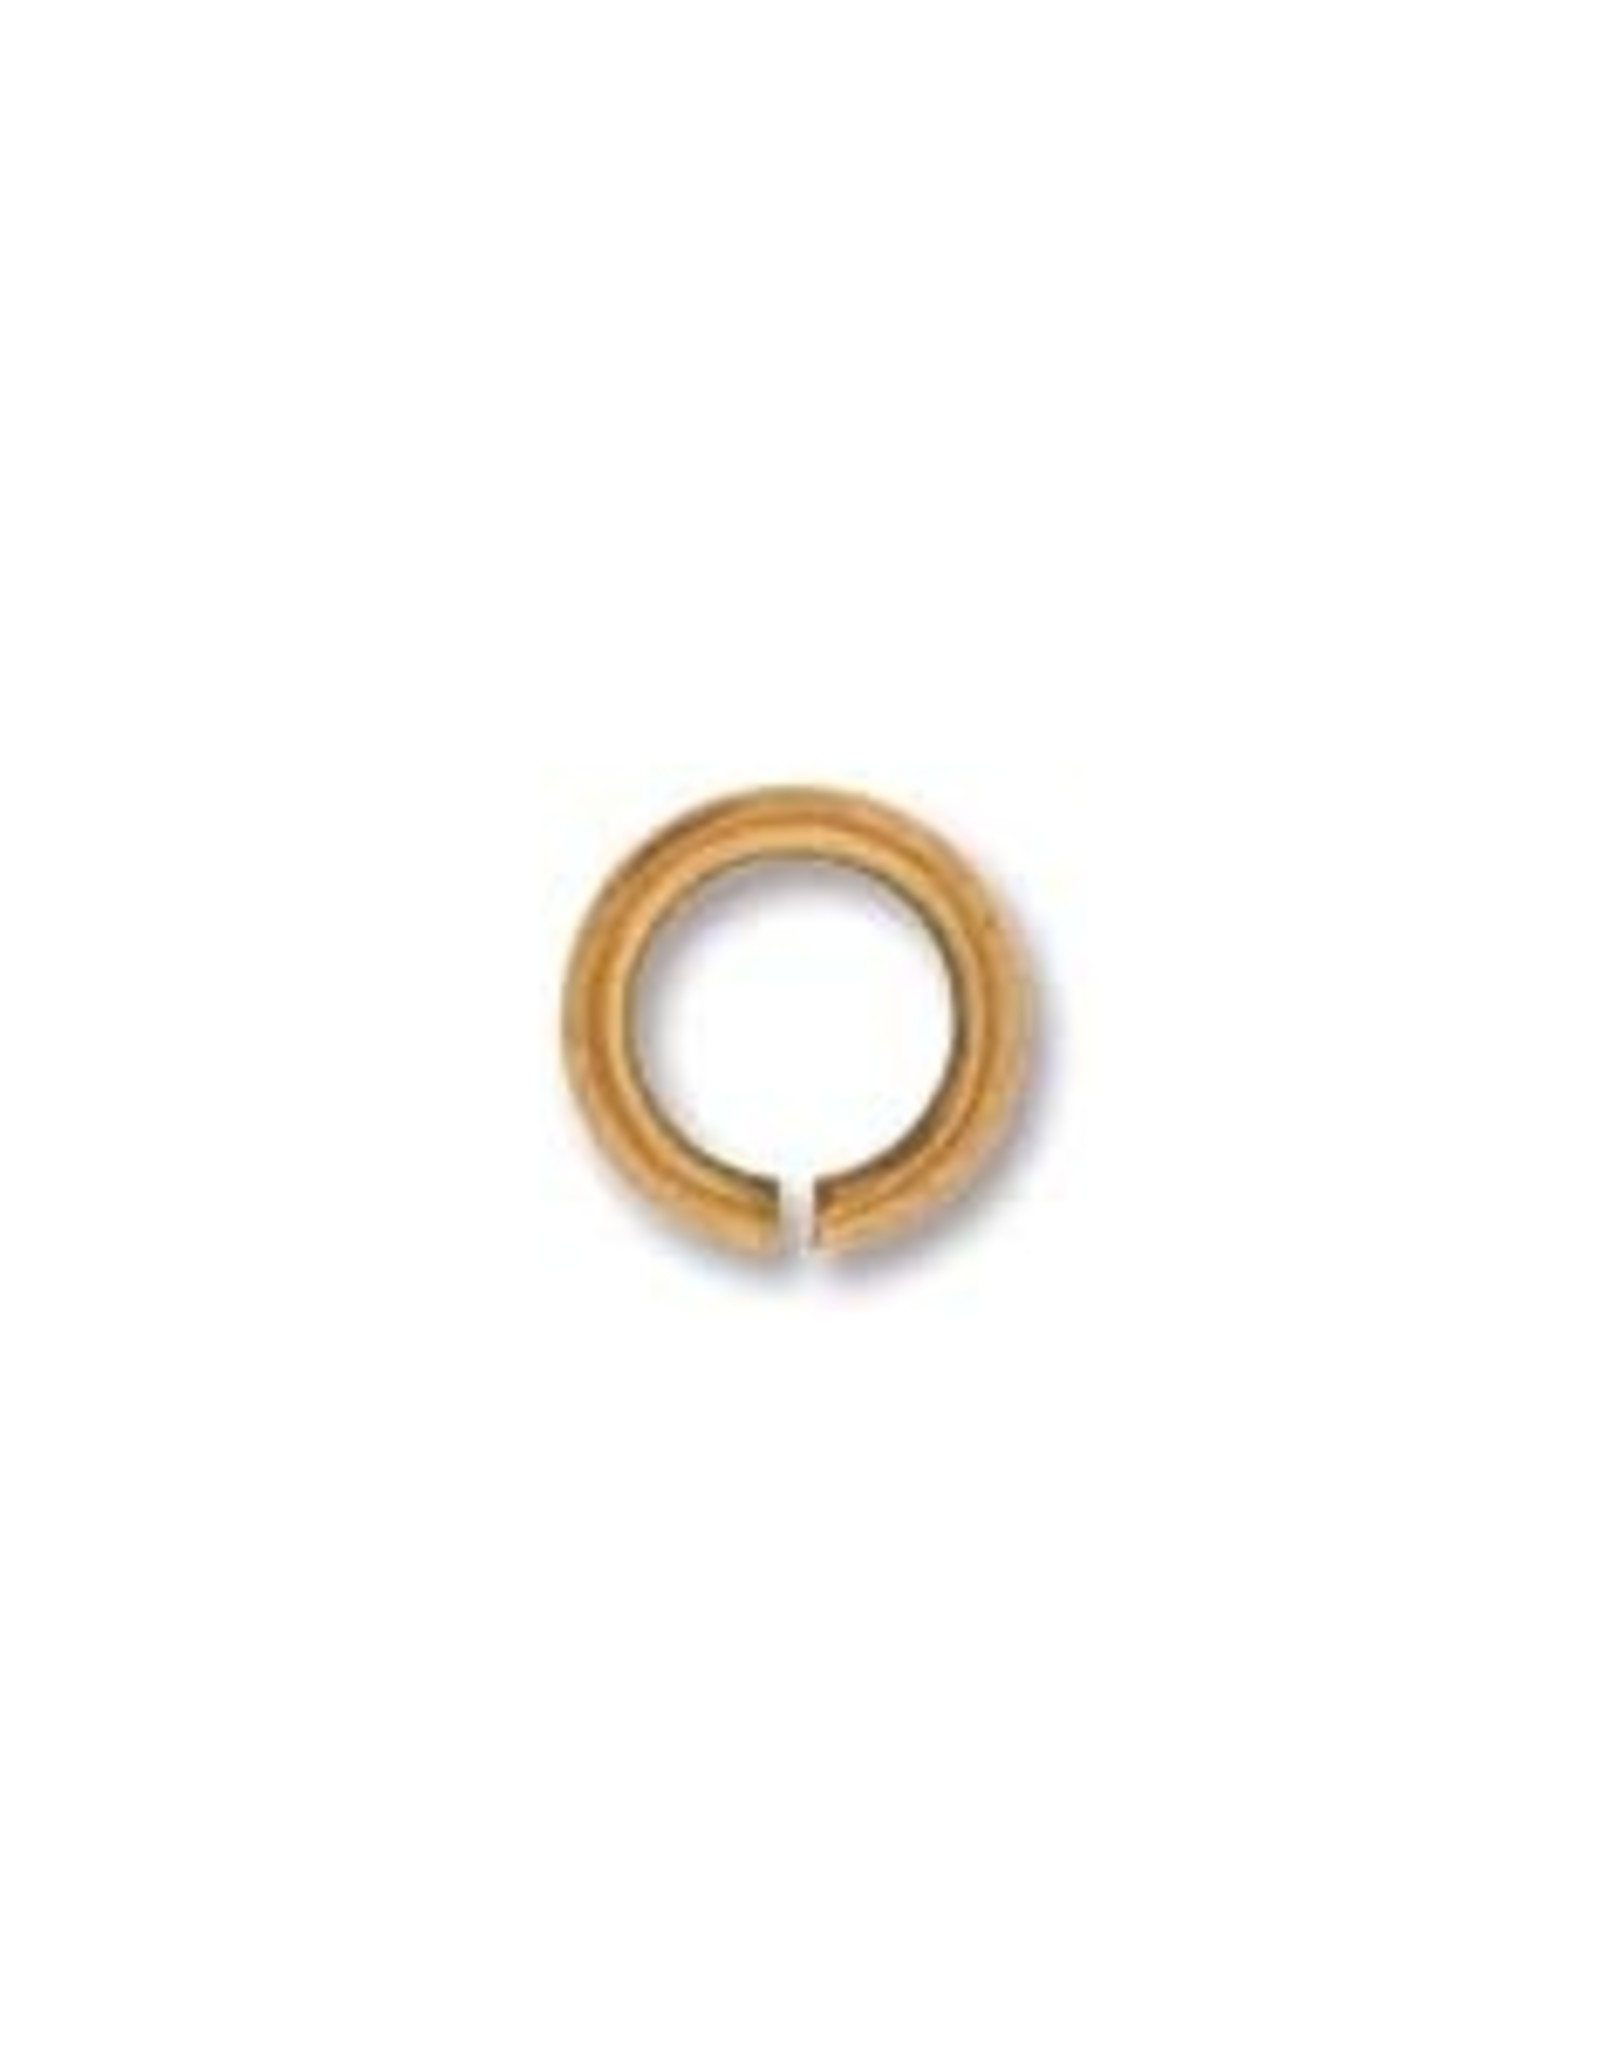 6mm Jump Ring Antique Copper Plate Qty 24